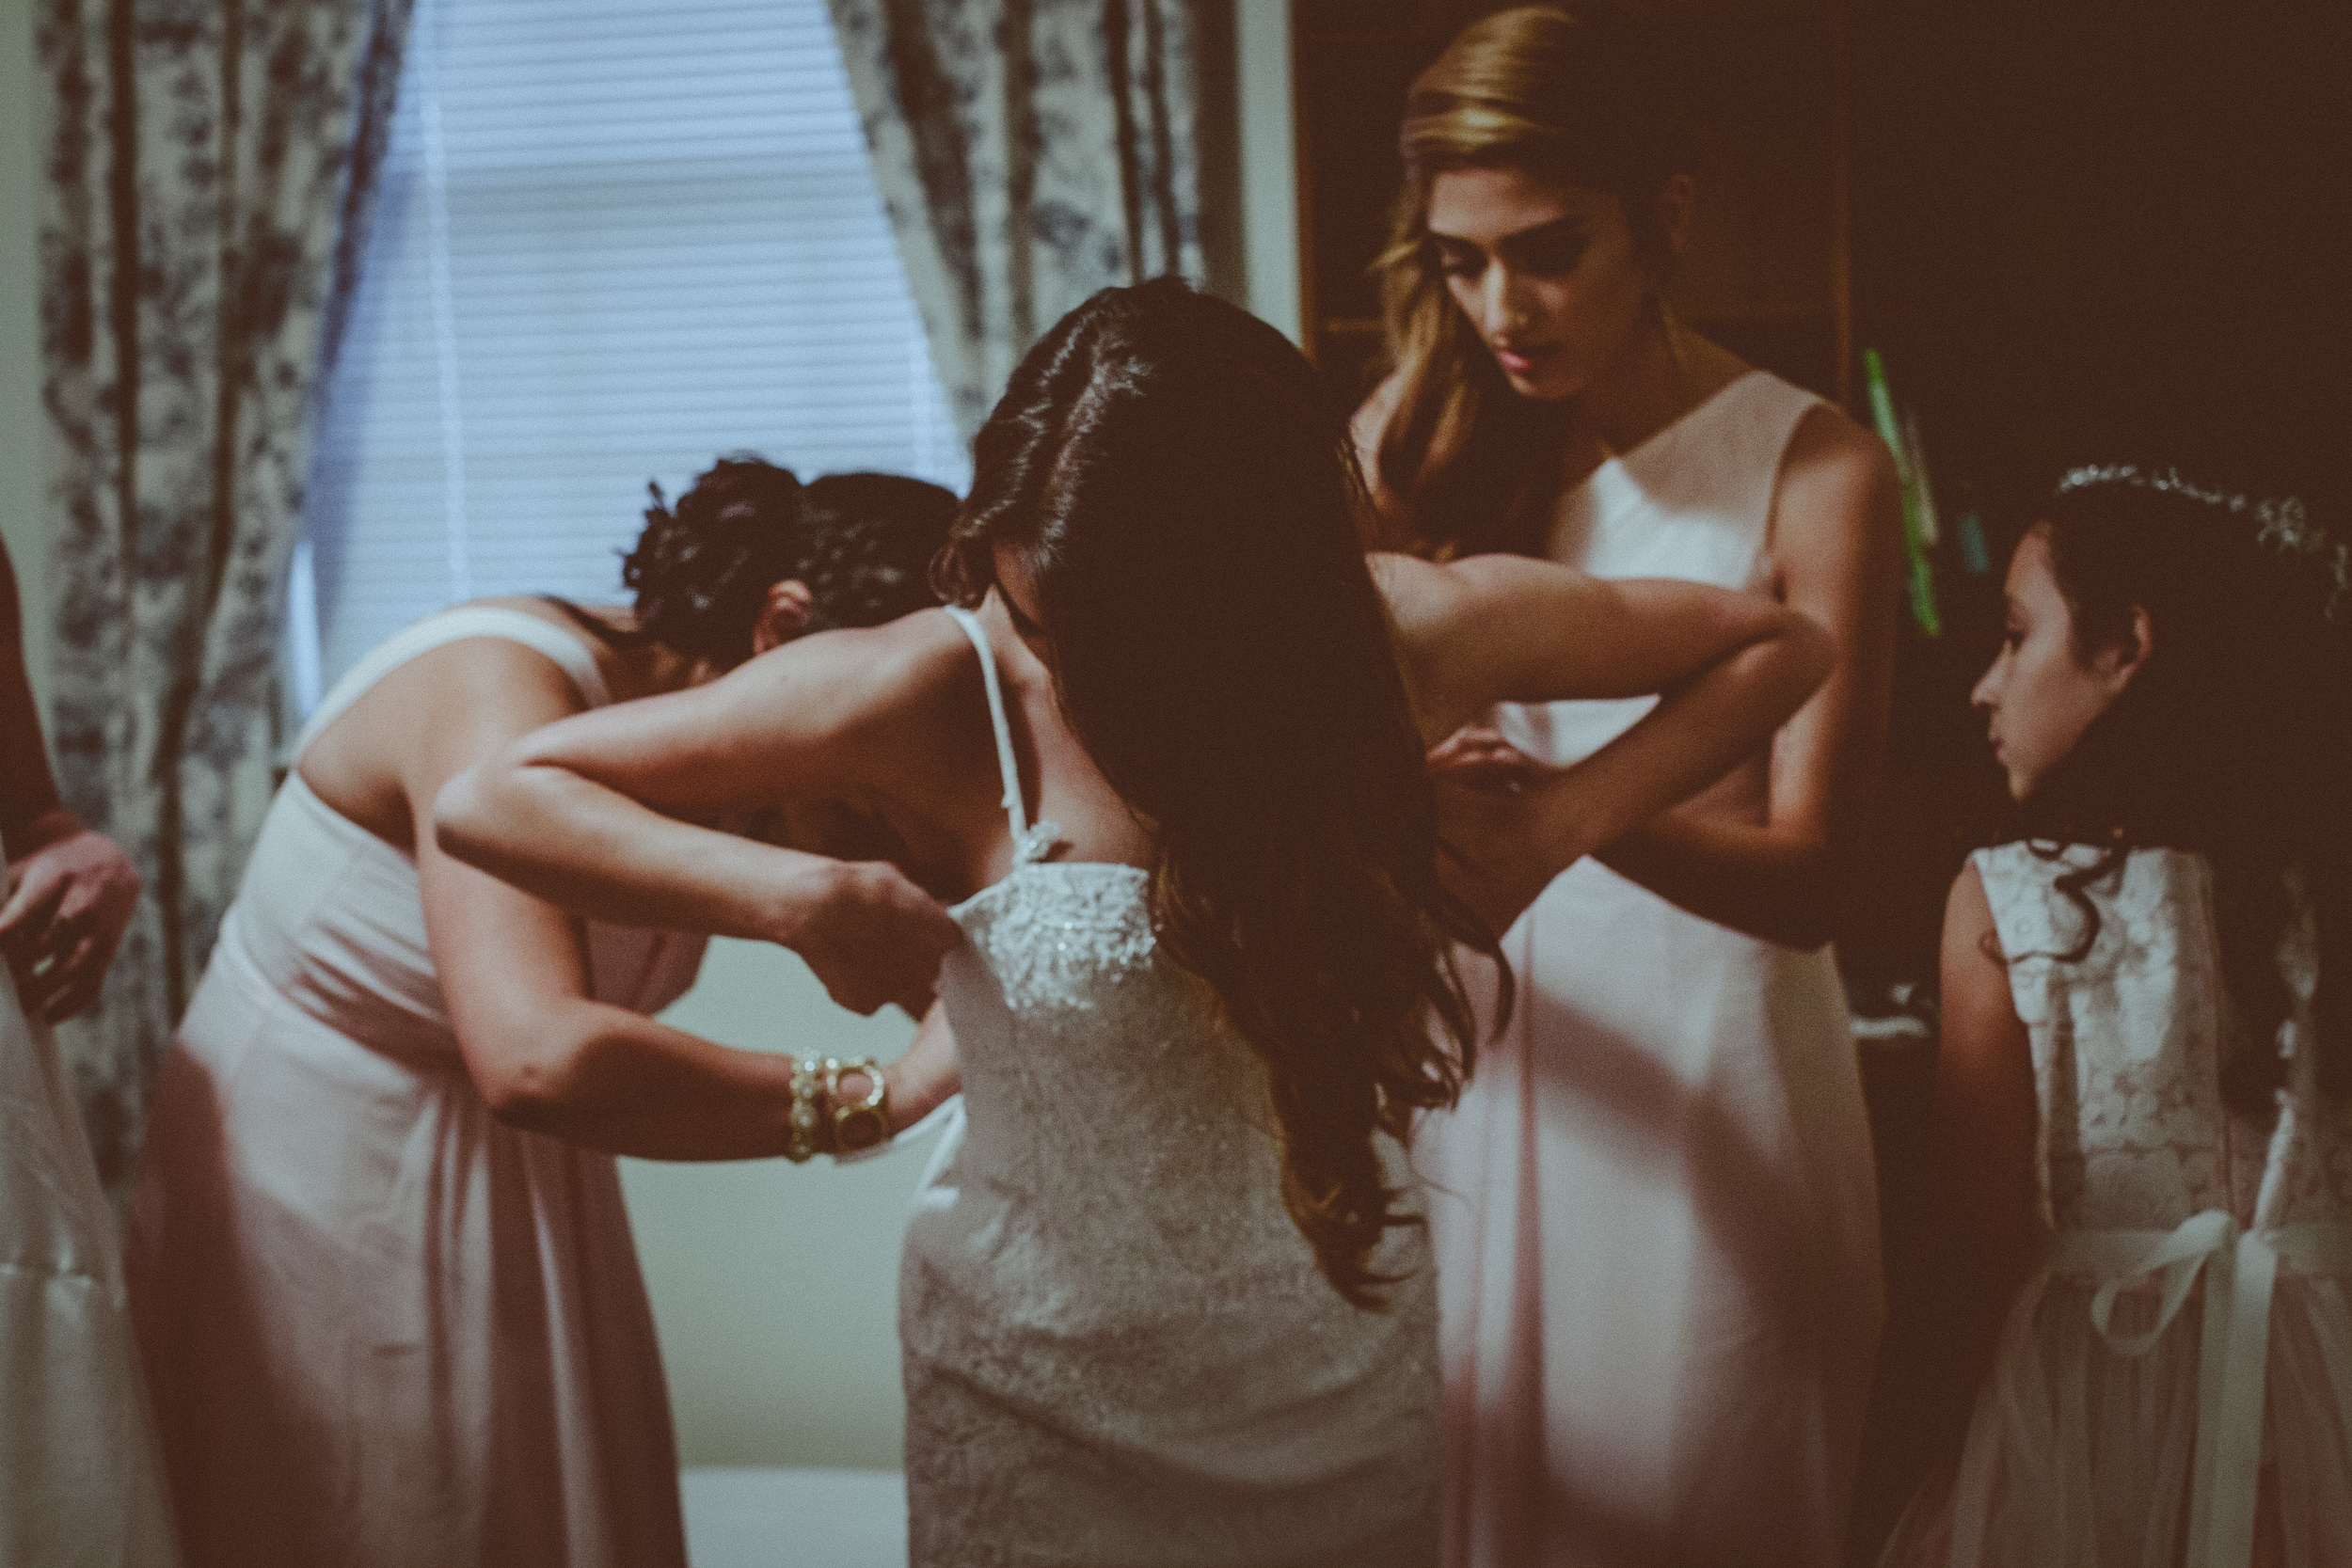 candid getting ready Jason + Miriam Stockstill. Wedding at TRC Baker, Louisiana. Images by Christi Childs the picture people LA.